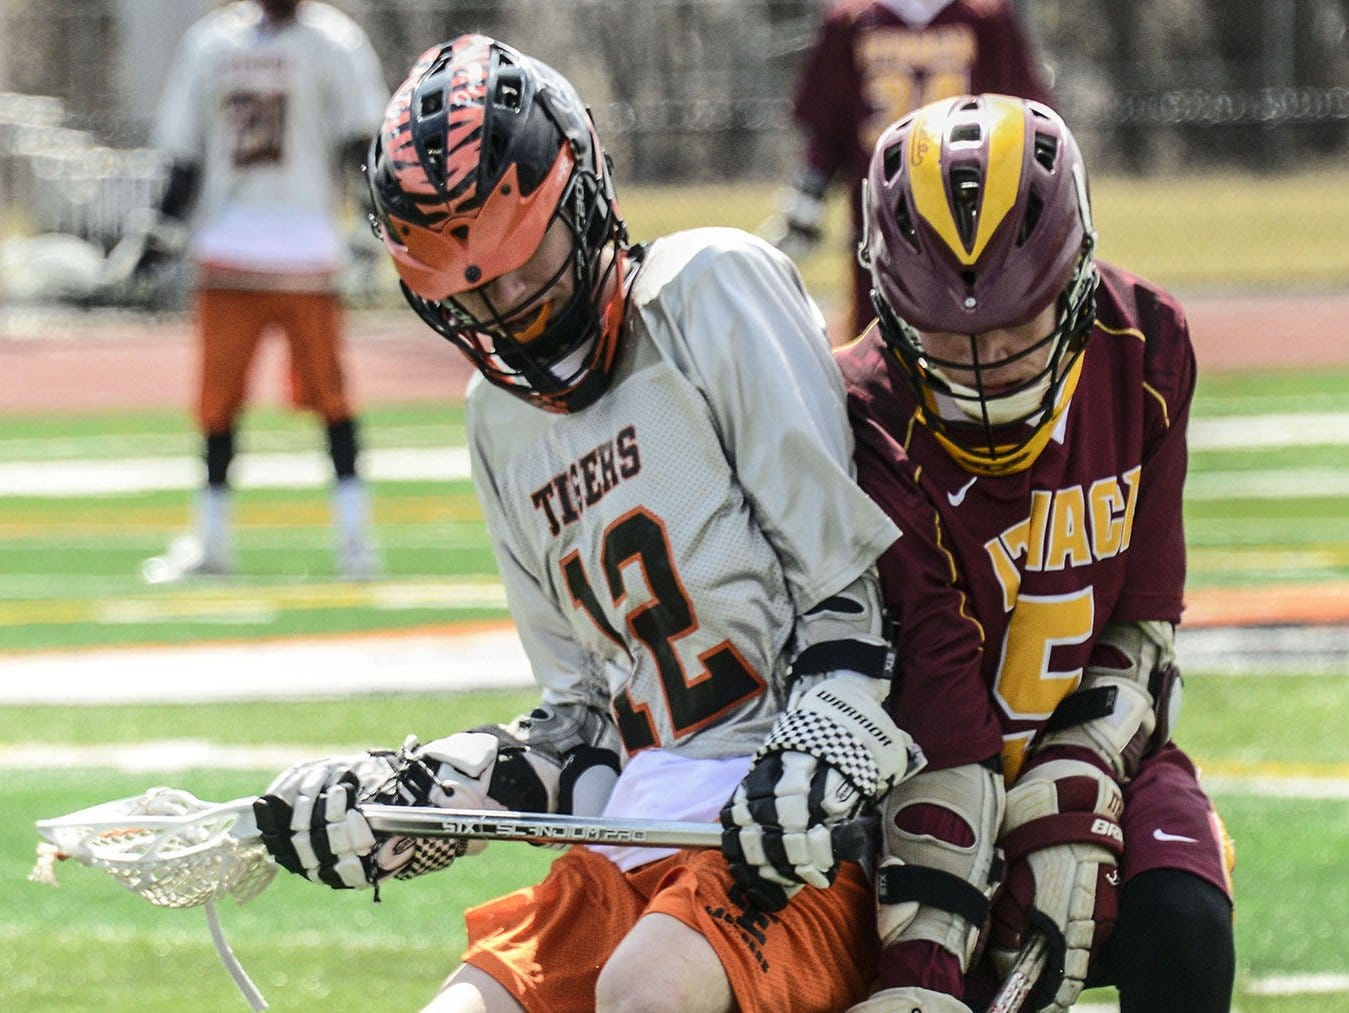 Ithaca's Aidan McMarthy and Union-Endicott's Eirk Legenhausen fight for control of the ball during a boys lacrosse game.